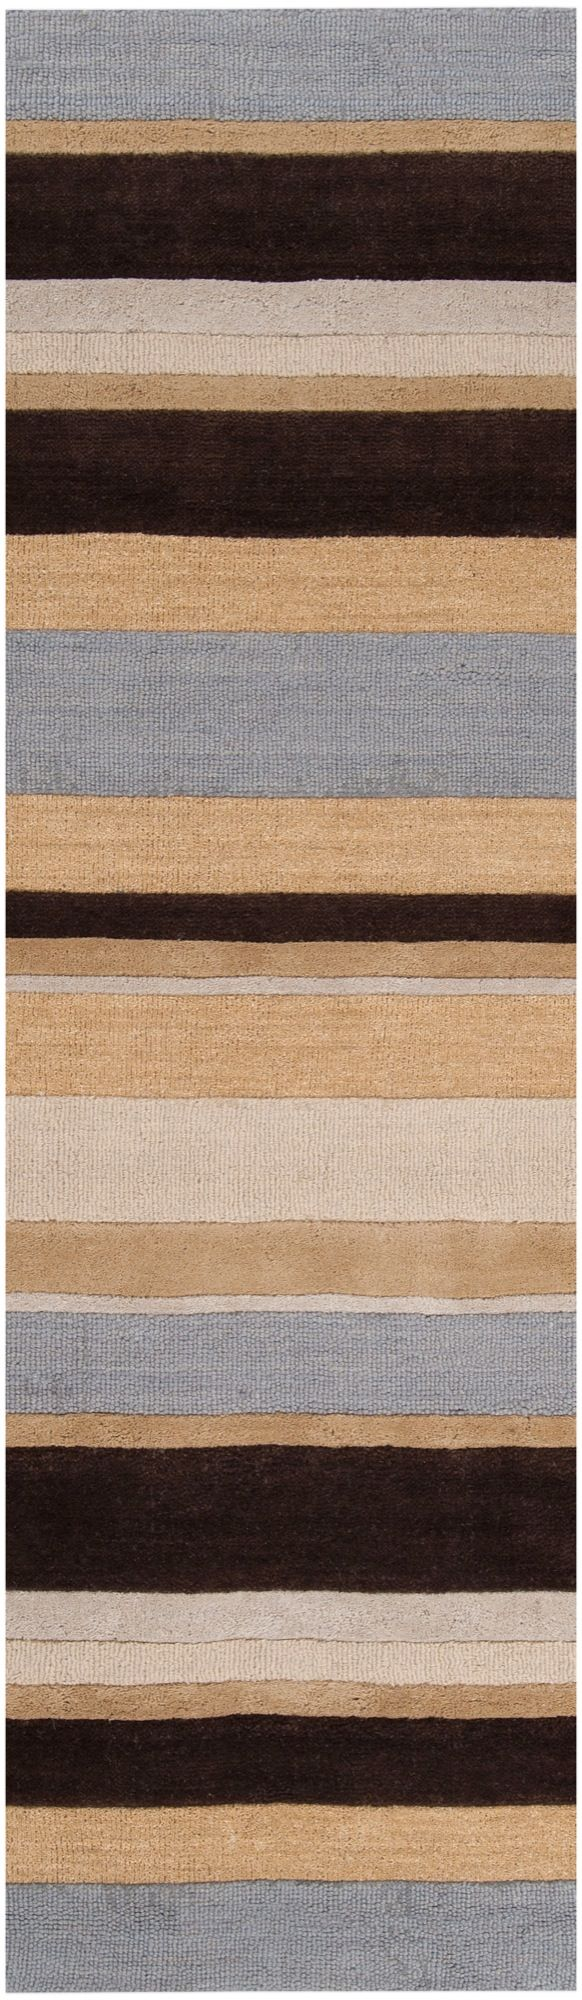 surya centennial solid/striped area rug collection